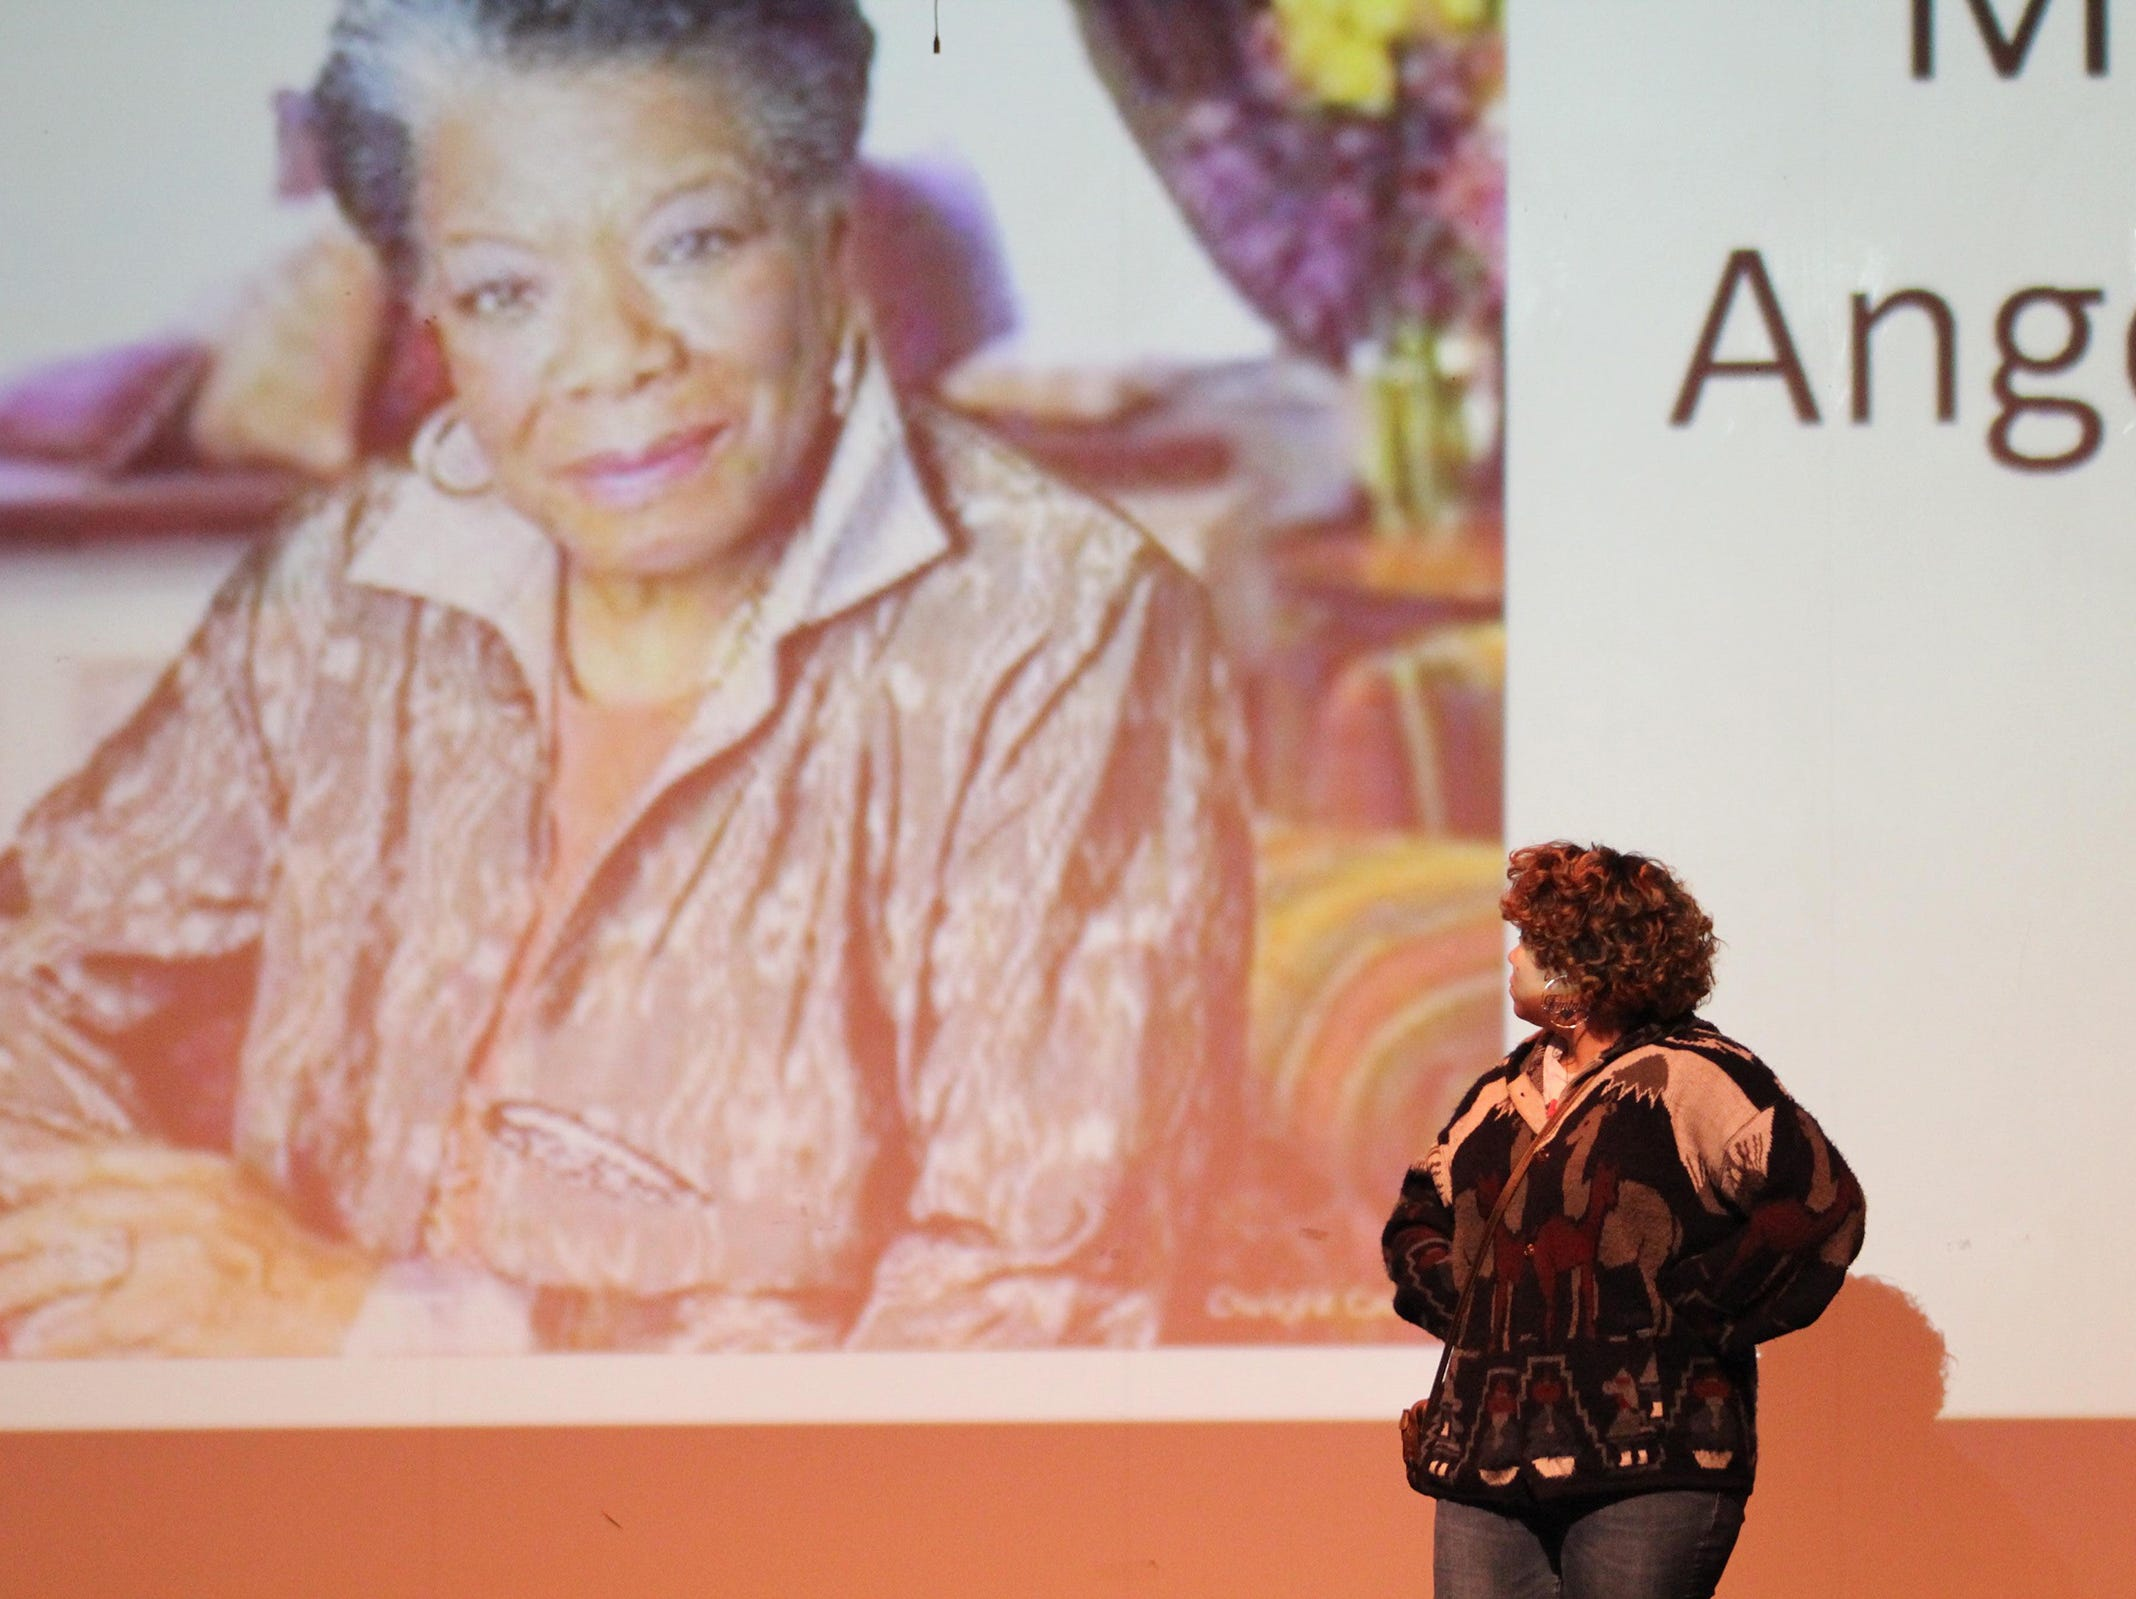 North Salem senior Alexia Walton pays tribute to poet Maya Angelou at the Black History Month Community Event at McKay High School in Salem on Thursday, Feb. 28, 2019. About 100 people attended the Salem-Keizer event, which included music, dancing, poetry and tributes to prominent black leaders throughout United States history.